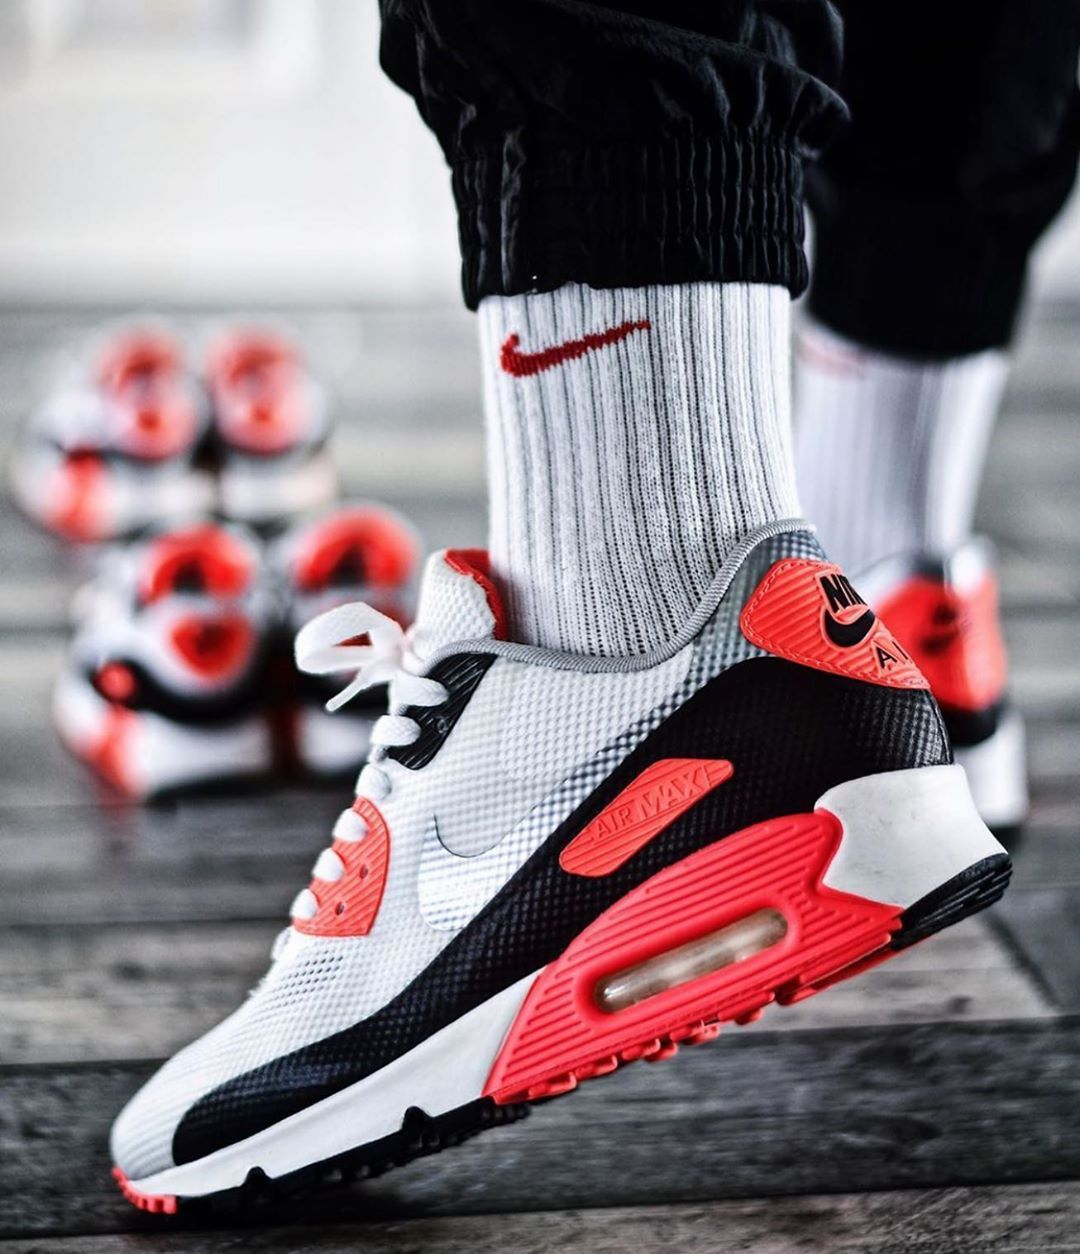 Nike Air Max 90 x Hyperfuse Infrared How do you rate this